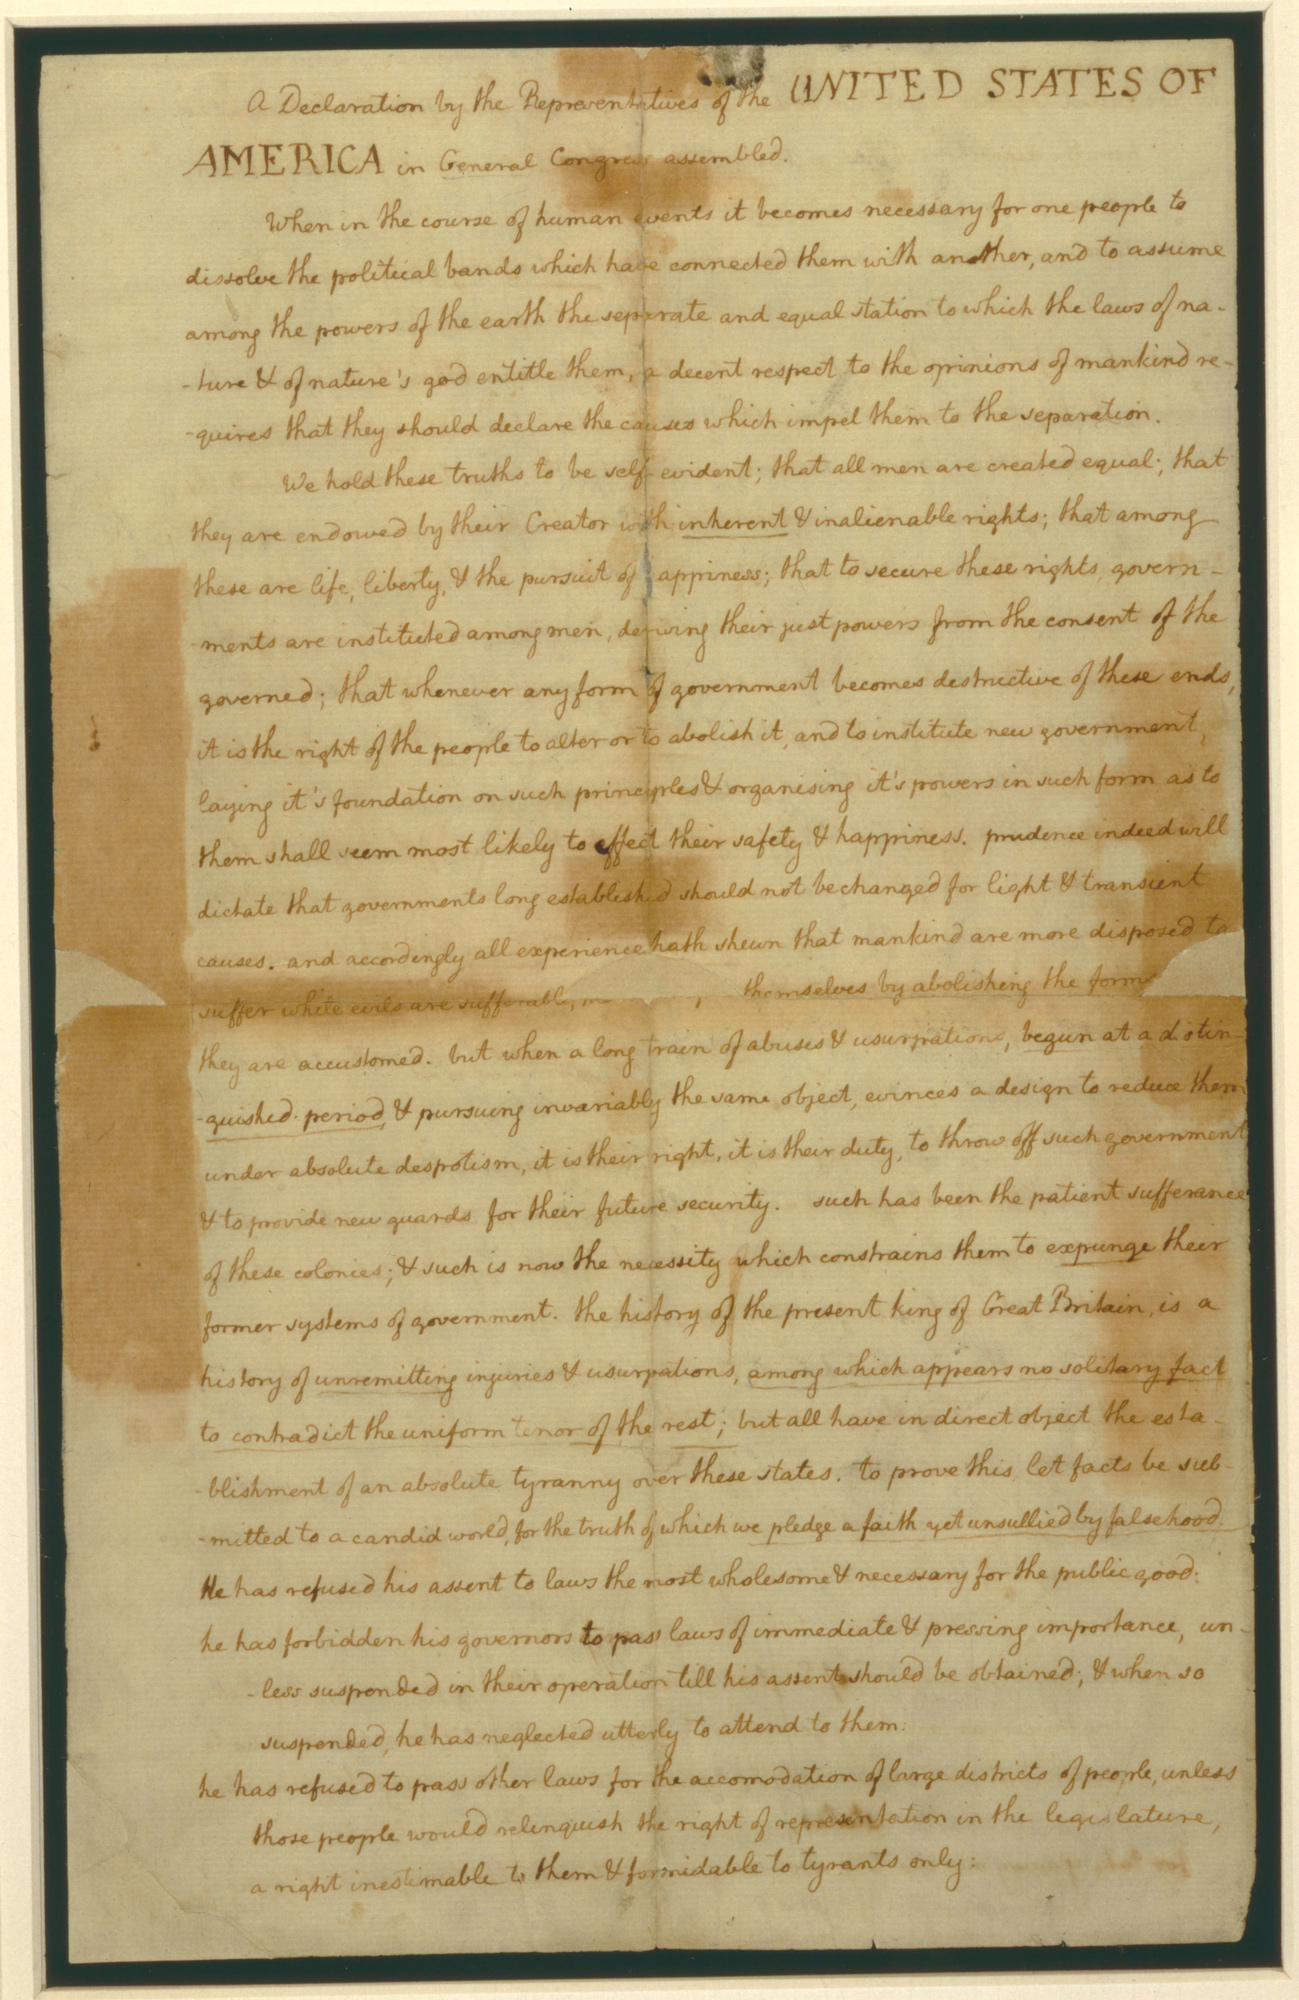 Draft of the American Declaration of Independence made by Thomas Jefferson